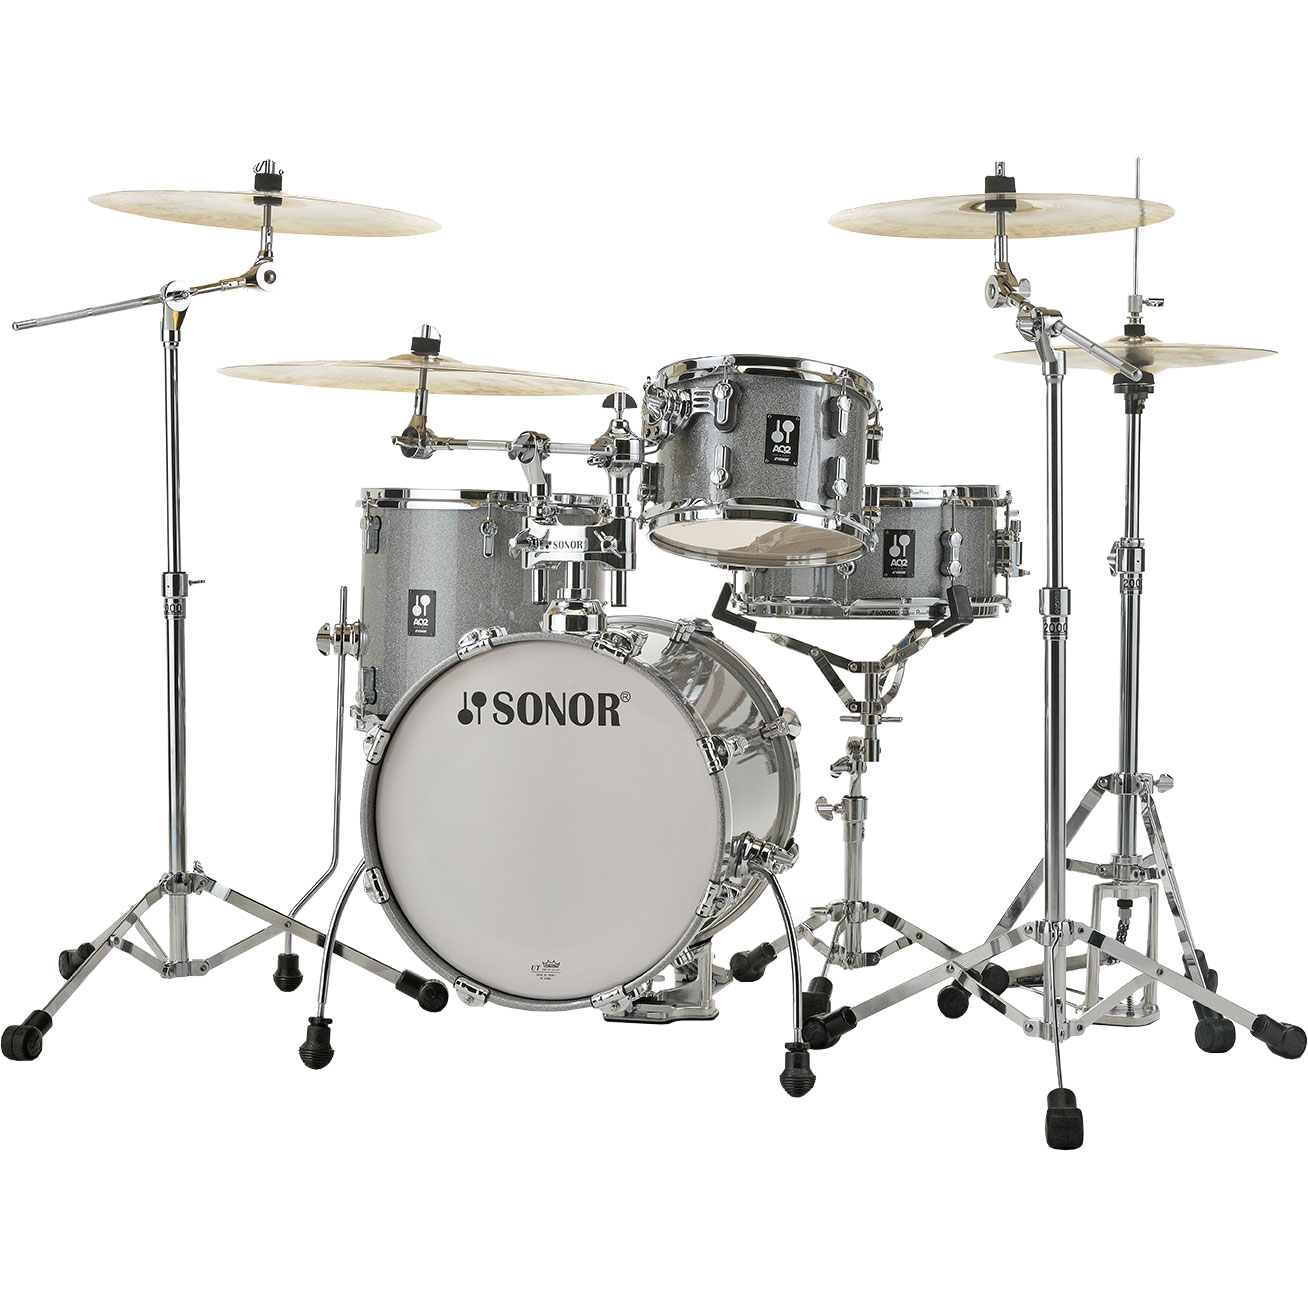 "Sonor AQ2 Safari 4-Piece Drum Set Shell Pack (16"" Bass, 10/13"" Toms, 13"" Snare)"